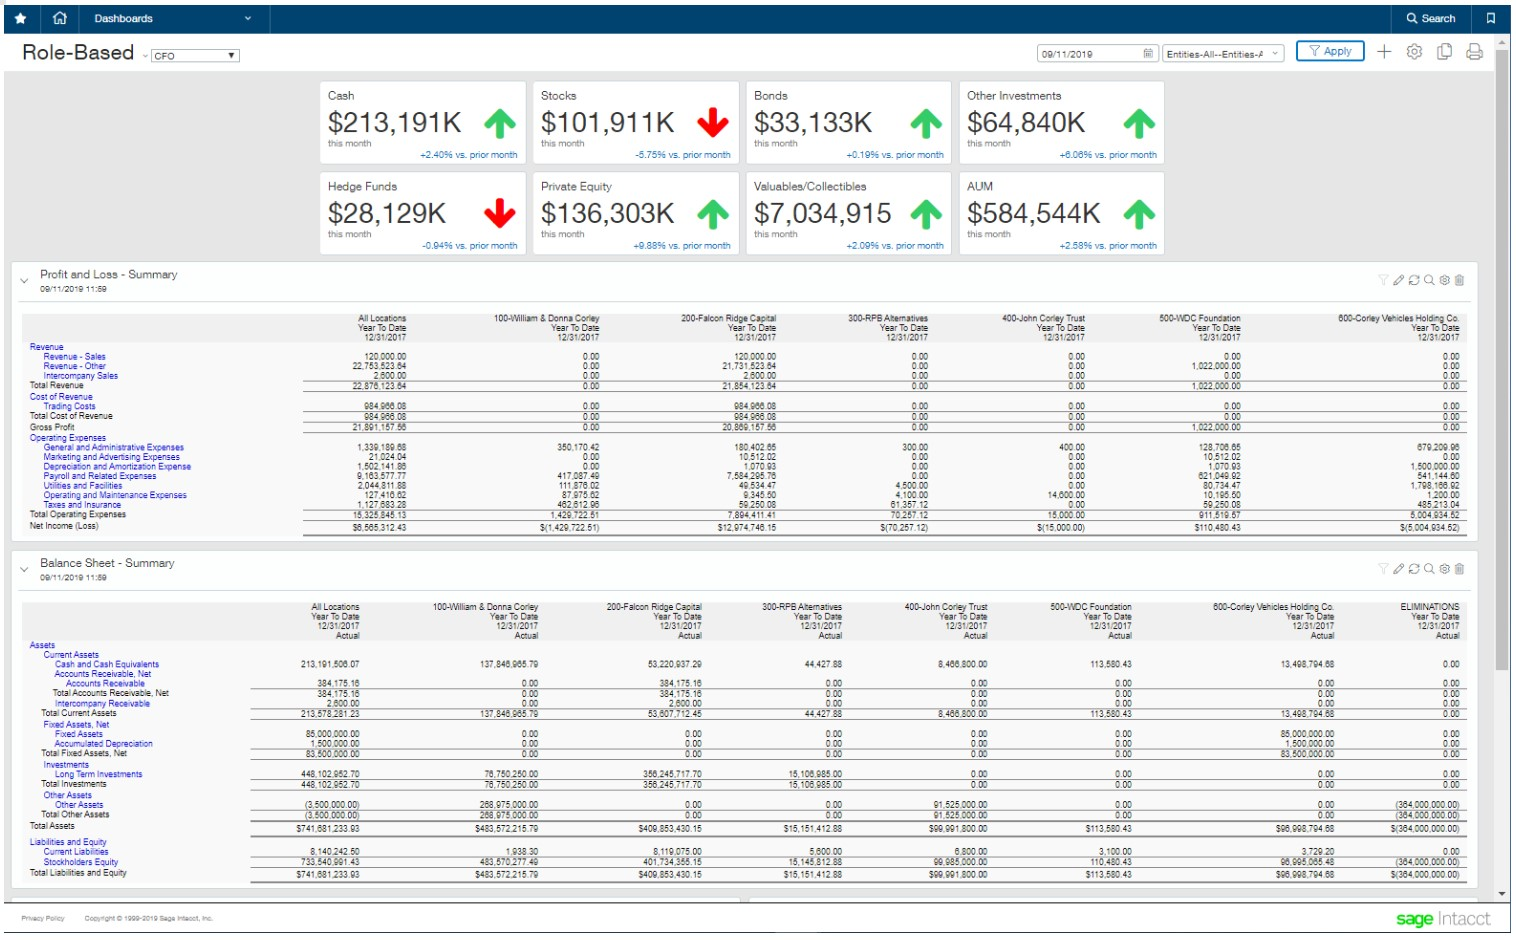 role-based dashboard for FS